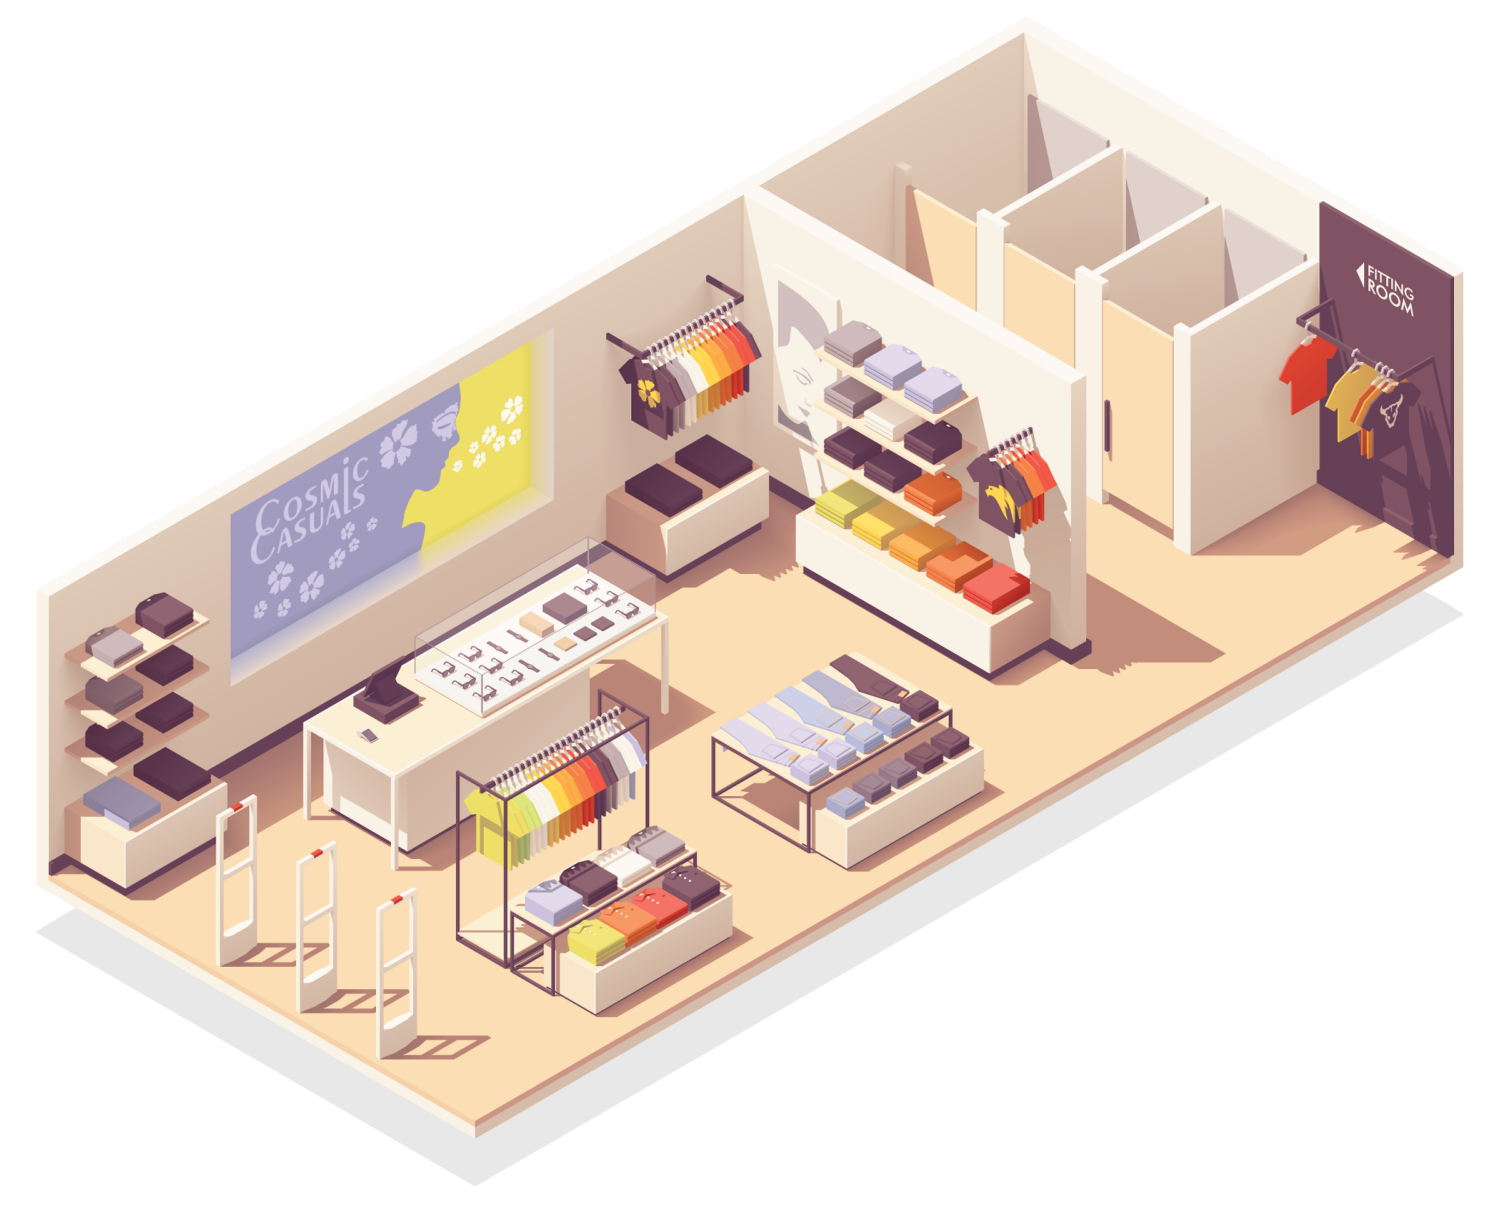 isometric cutaway illustration of a shop called Cosmic Casuals, where Cosmic Cleaning Bristol might provide contract cleaning services